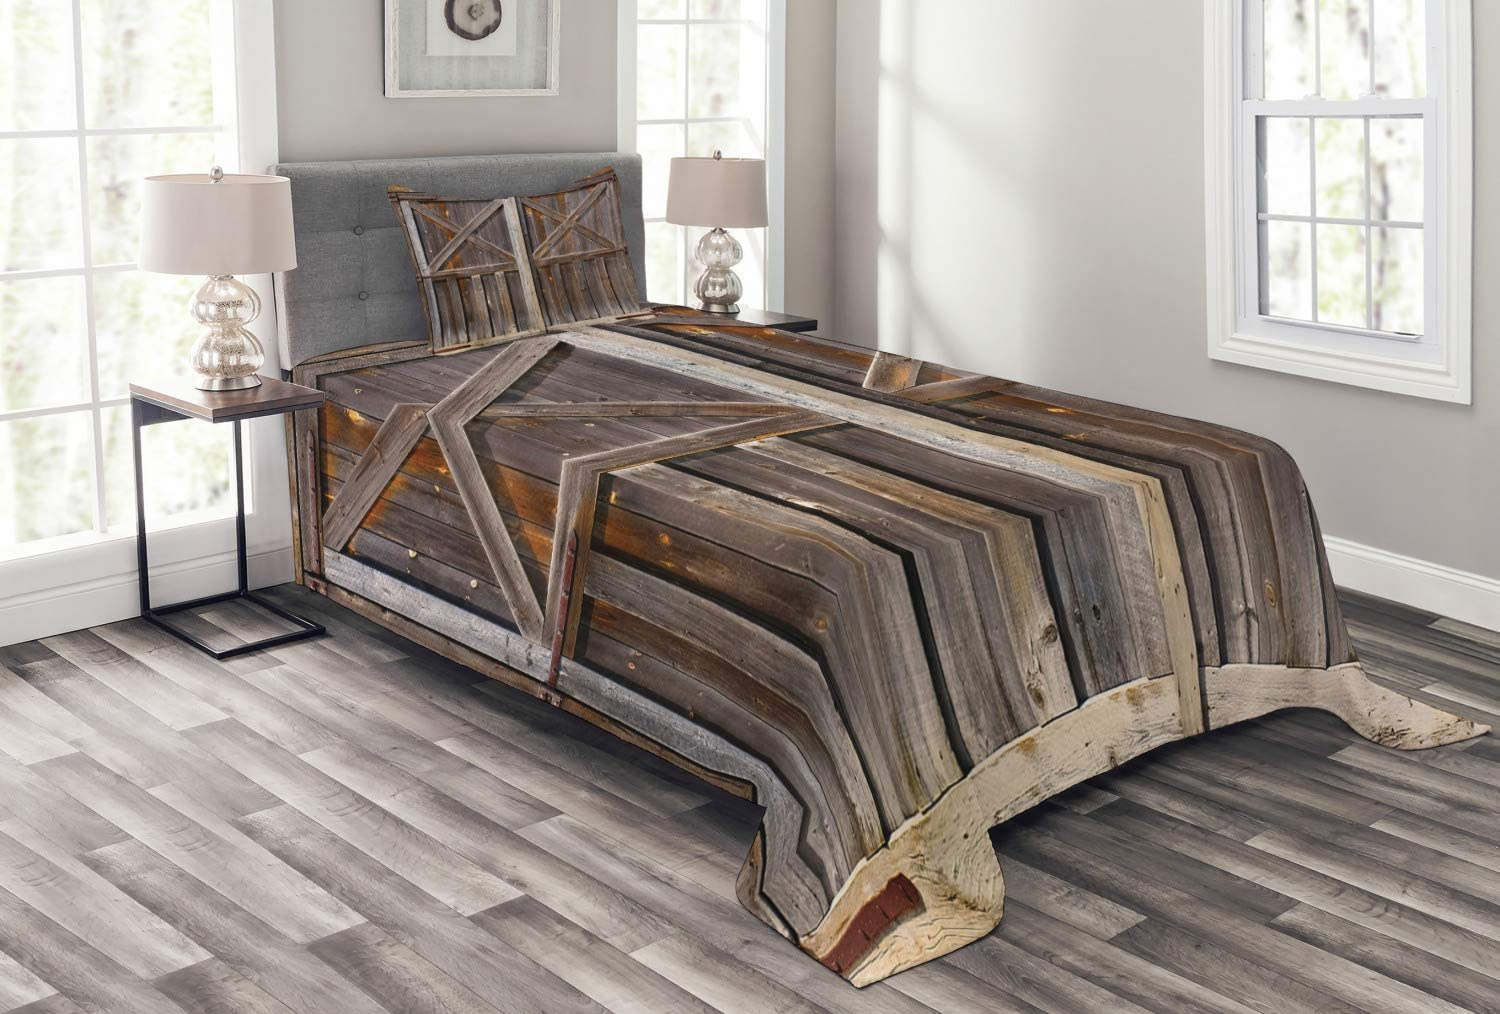 Ambesonne Rustic Bedspread, Old Wooden Barn Door of Farmhouse Oak Countryside Village Board Rural Life Photo Print, Decorative Quilted 2 Piece Coverlet Set with Pillow Sham, Twin Size, Brown